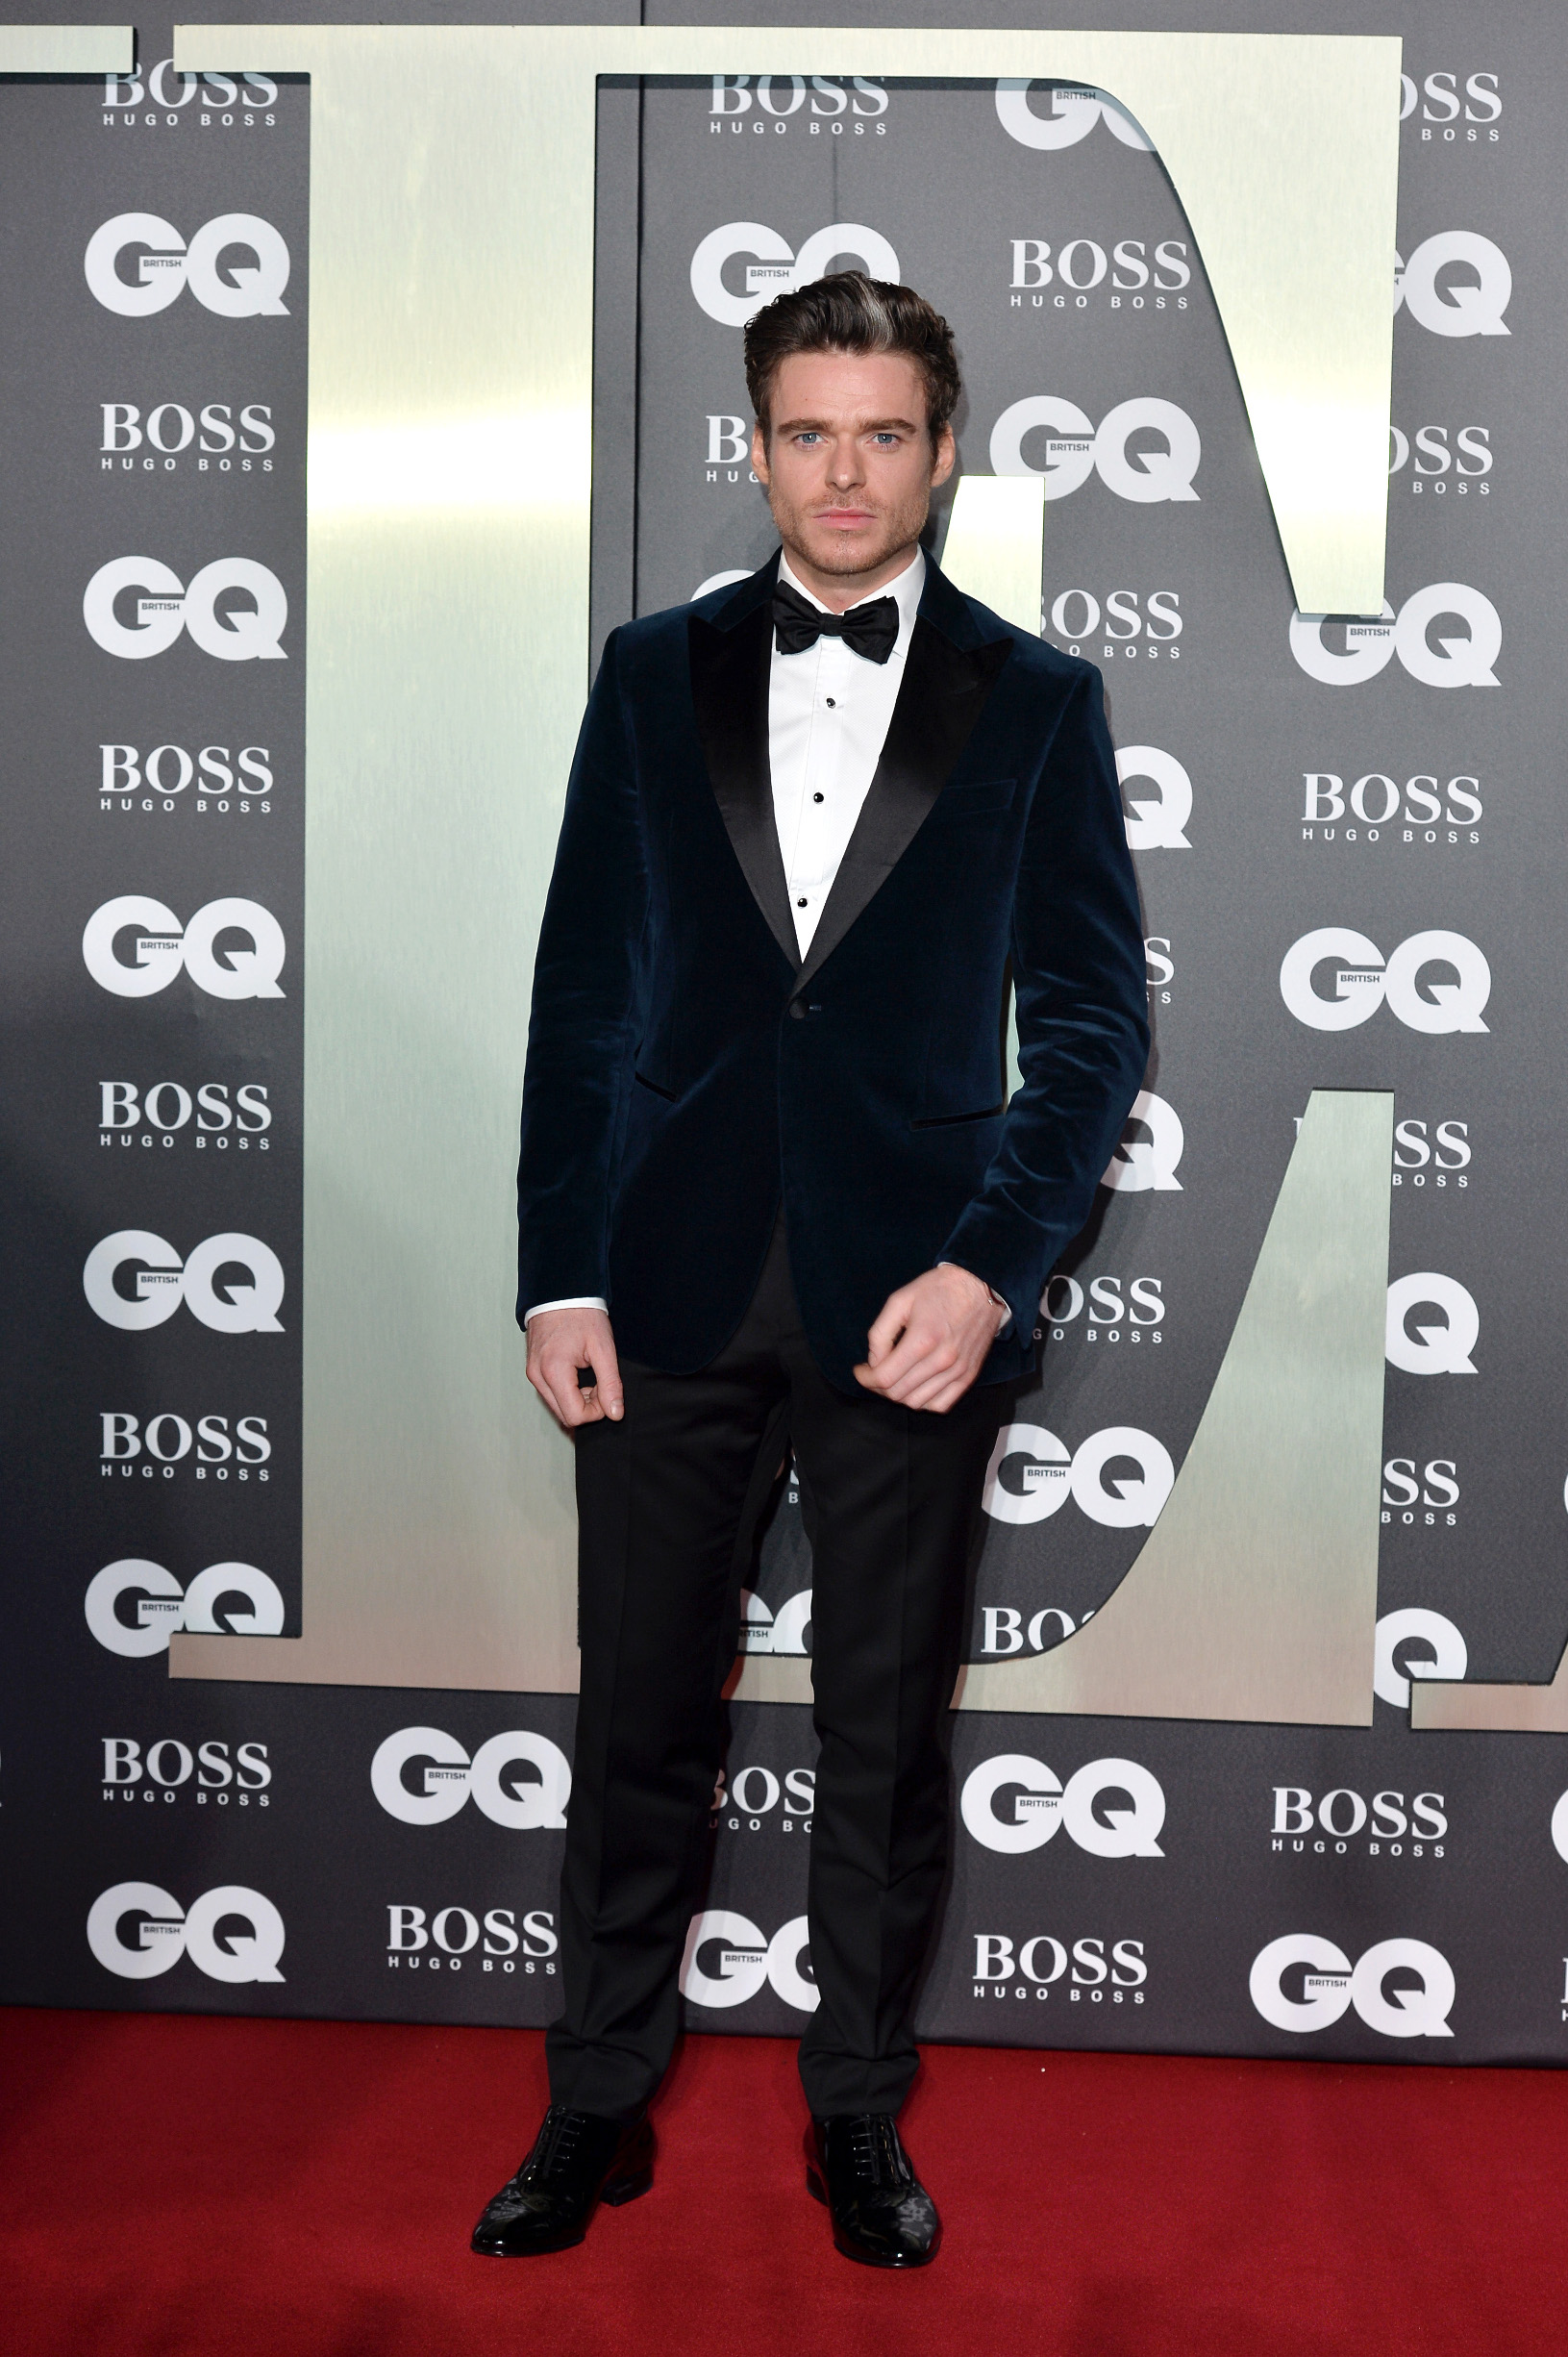 LONDON, ENGLAND - SEPTEMBER 03: Richard Madden attends the GQ Men Of The Year Awards 2019 at Tate Modern on September 03, 2019 in London, England. (Photo by Jeff Spicer/Getty Images)